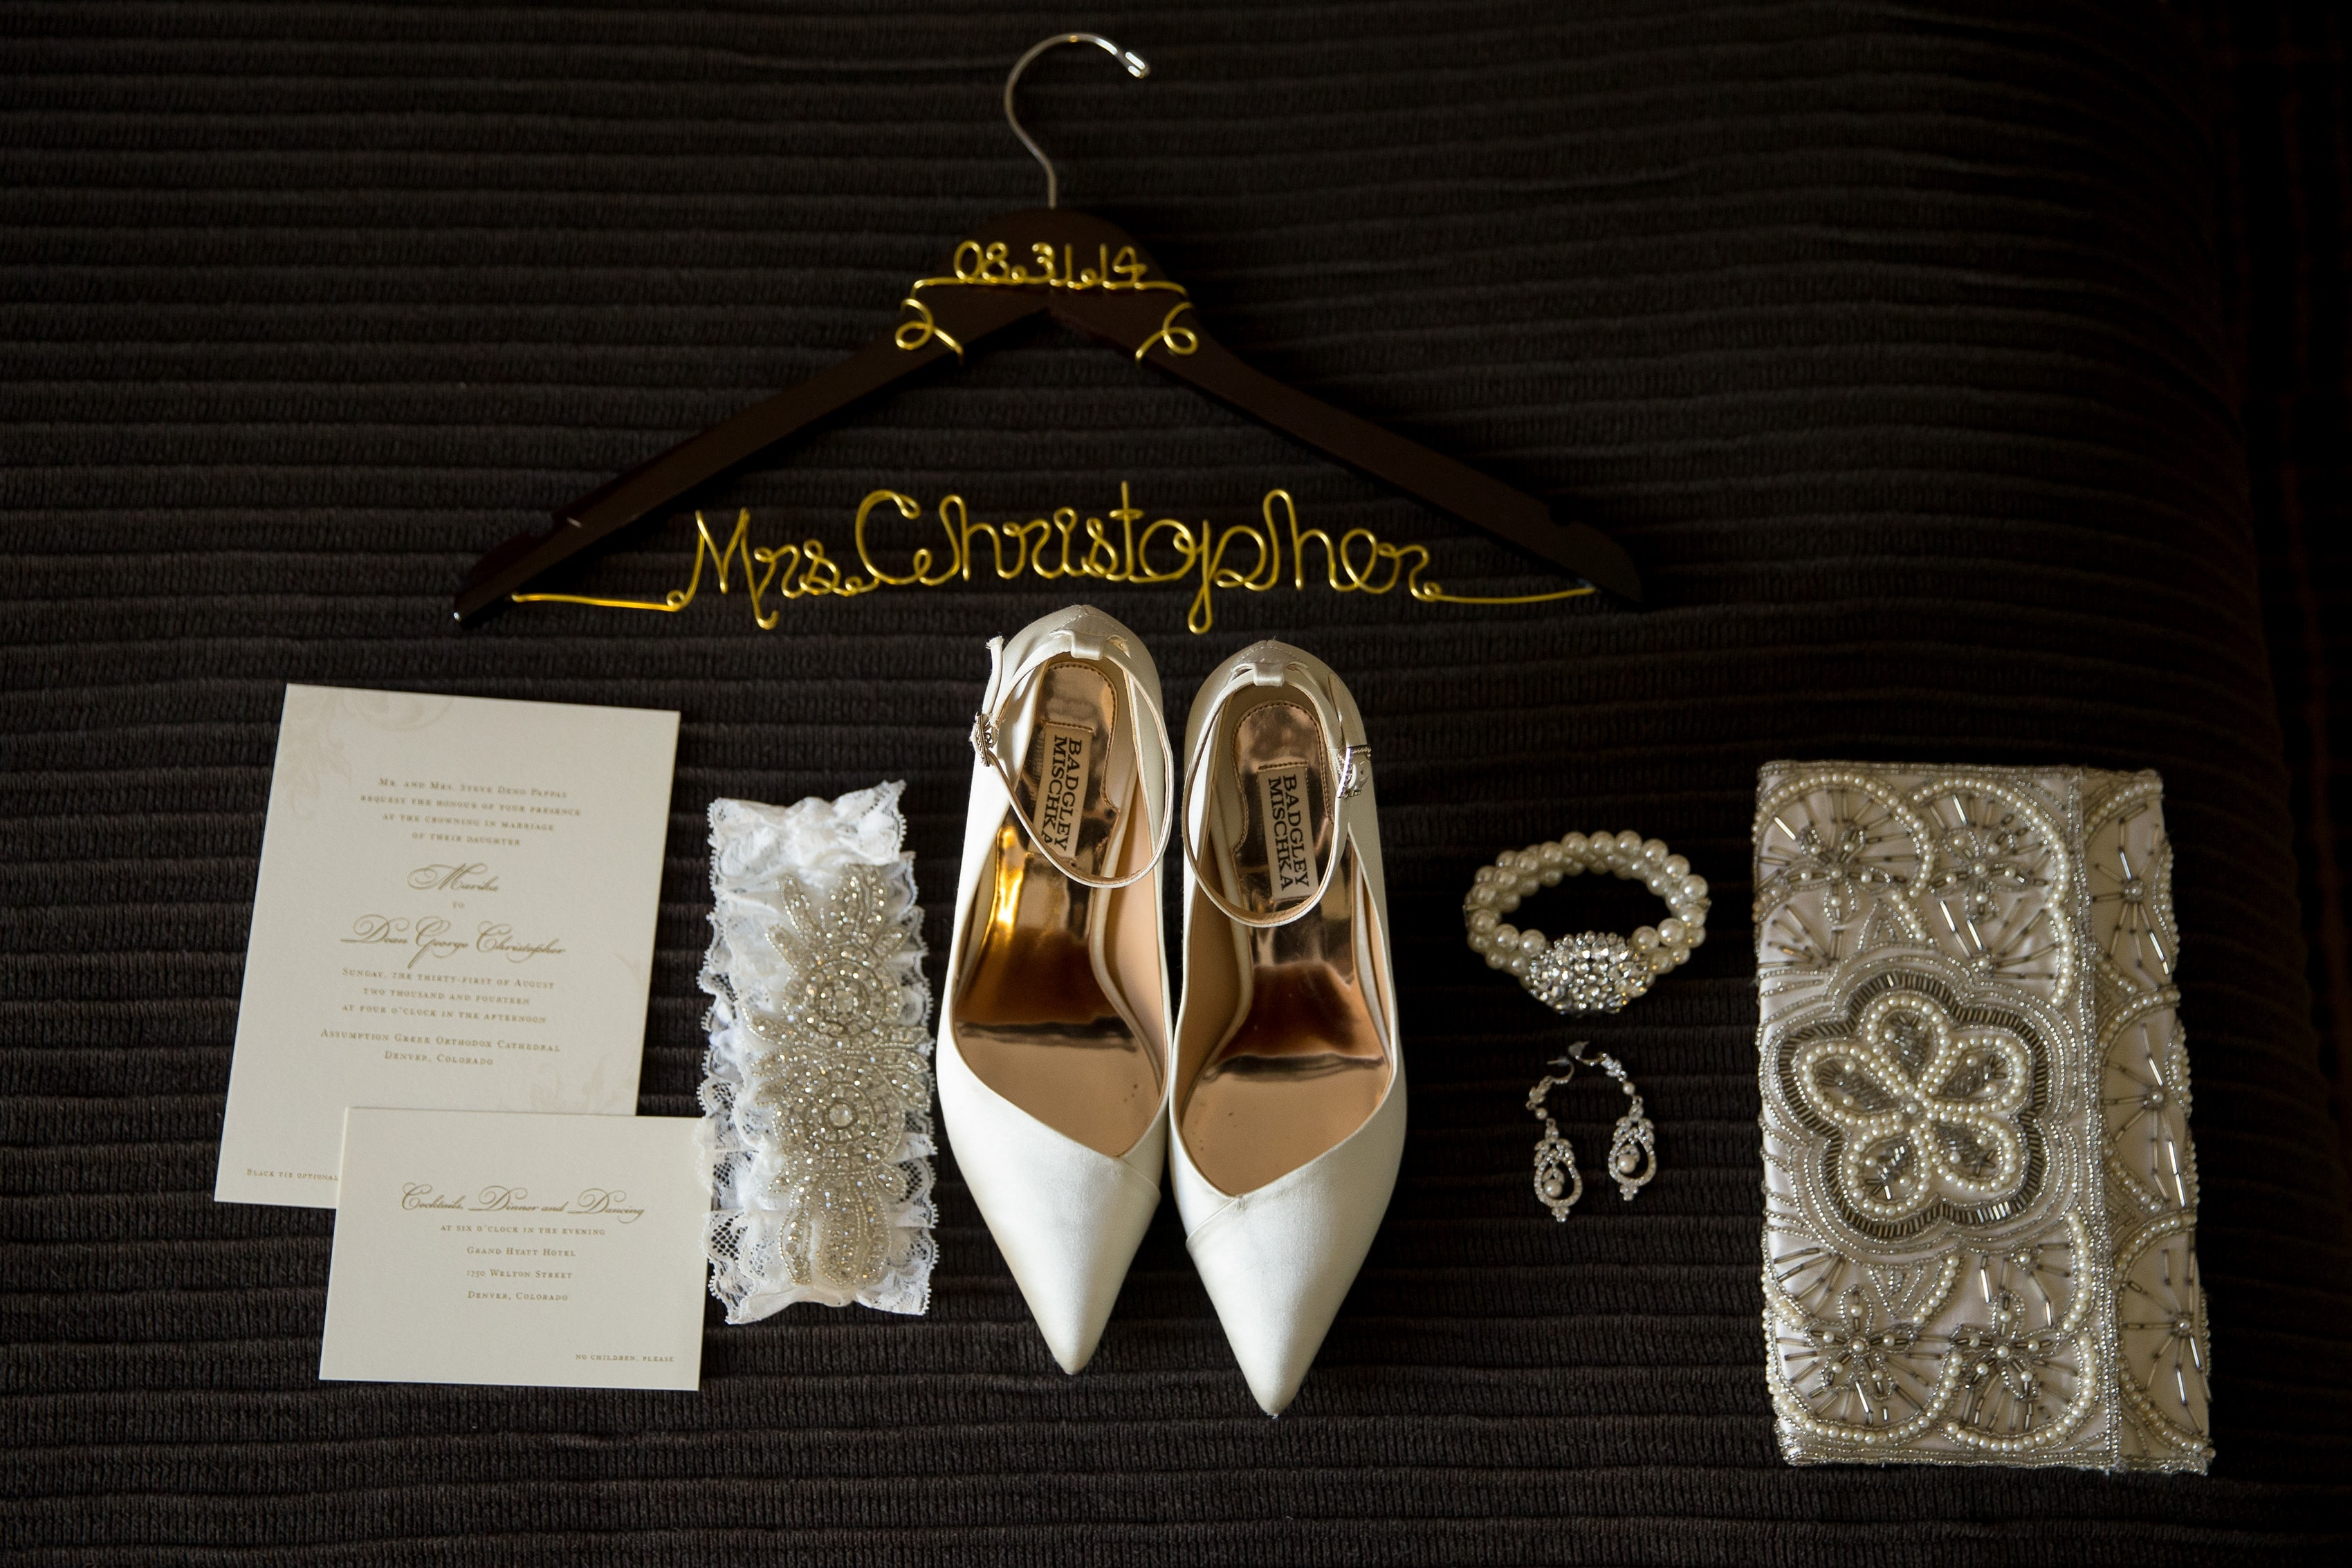 Bridal accessories are laid out on the bed